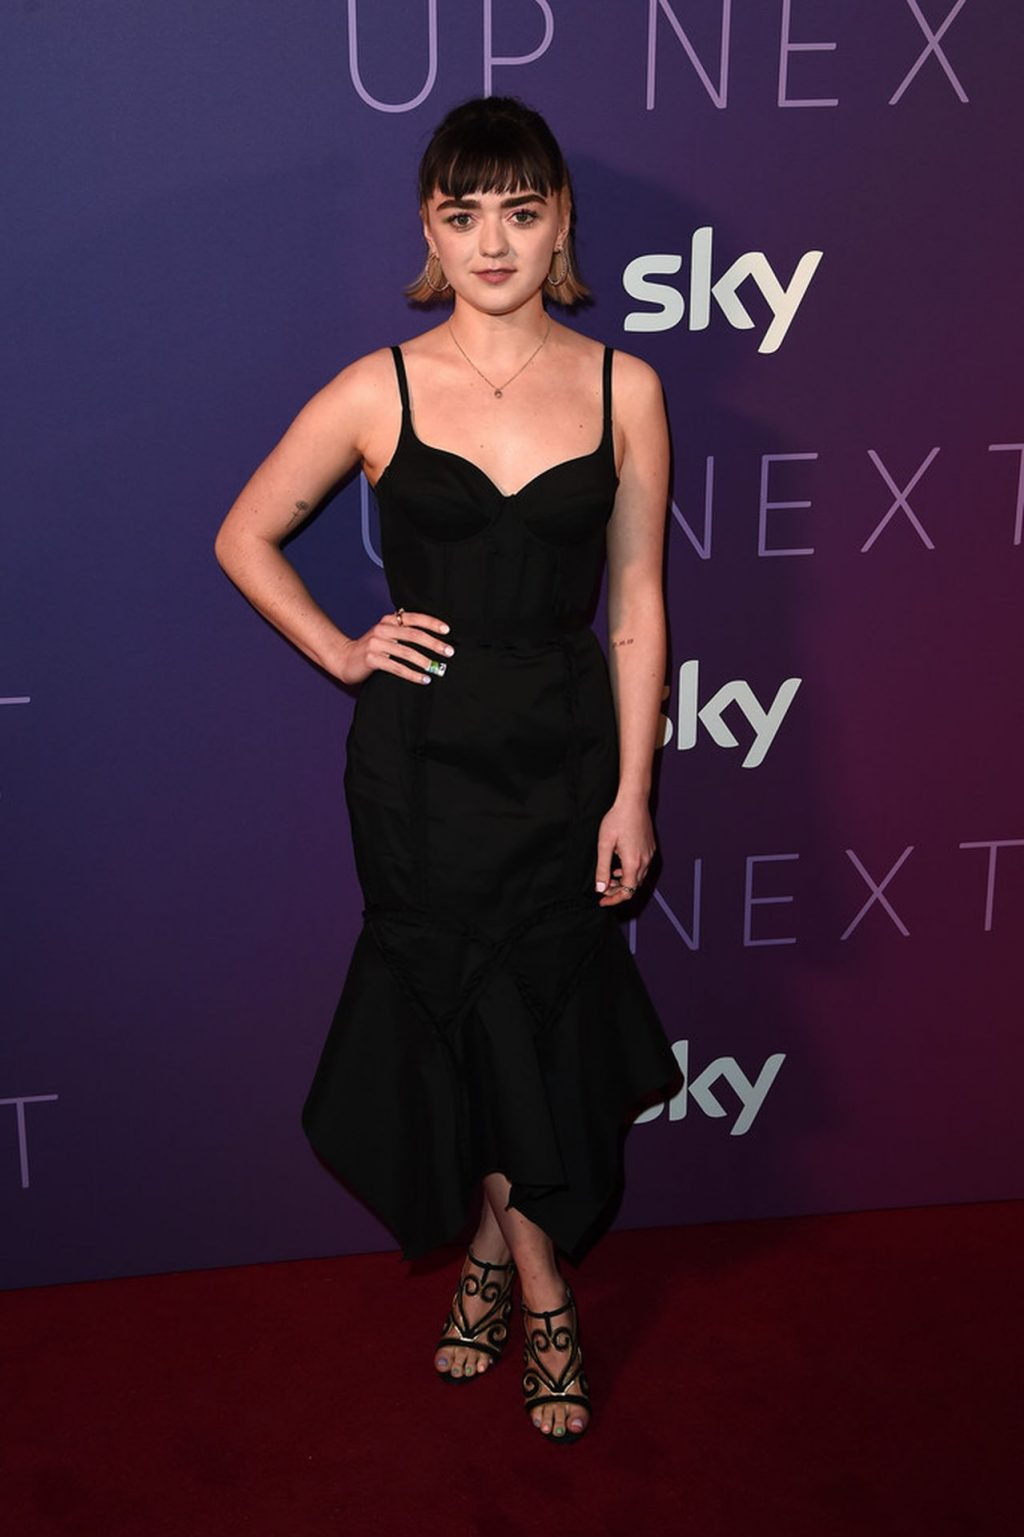 Maisie Williams Pictured Attending the Sky Up Next Event (17 Photos)